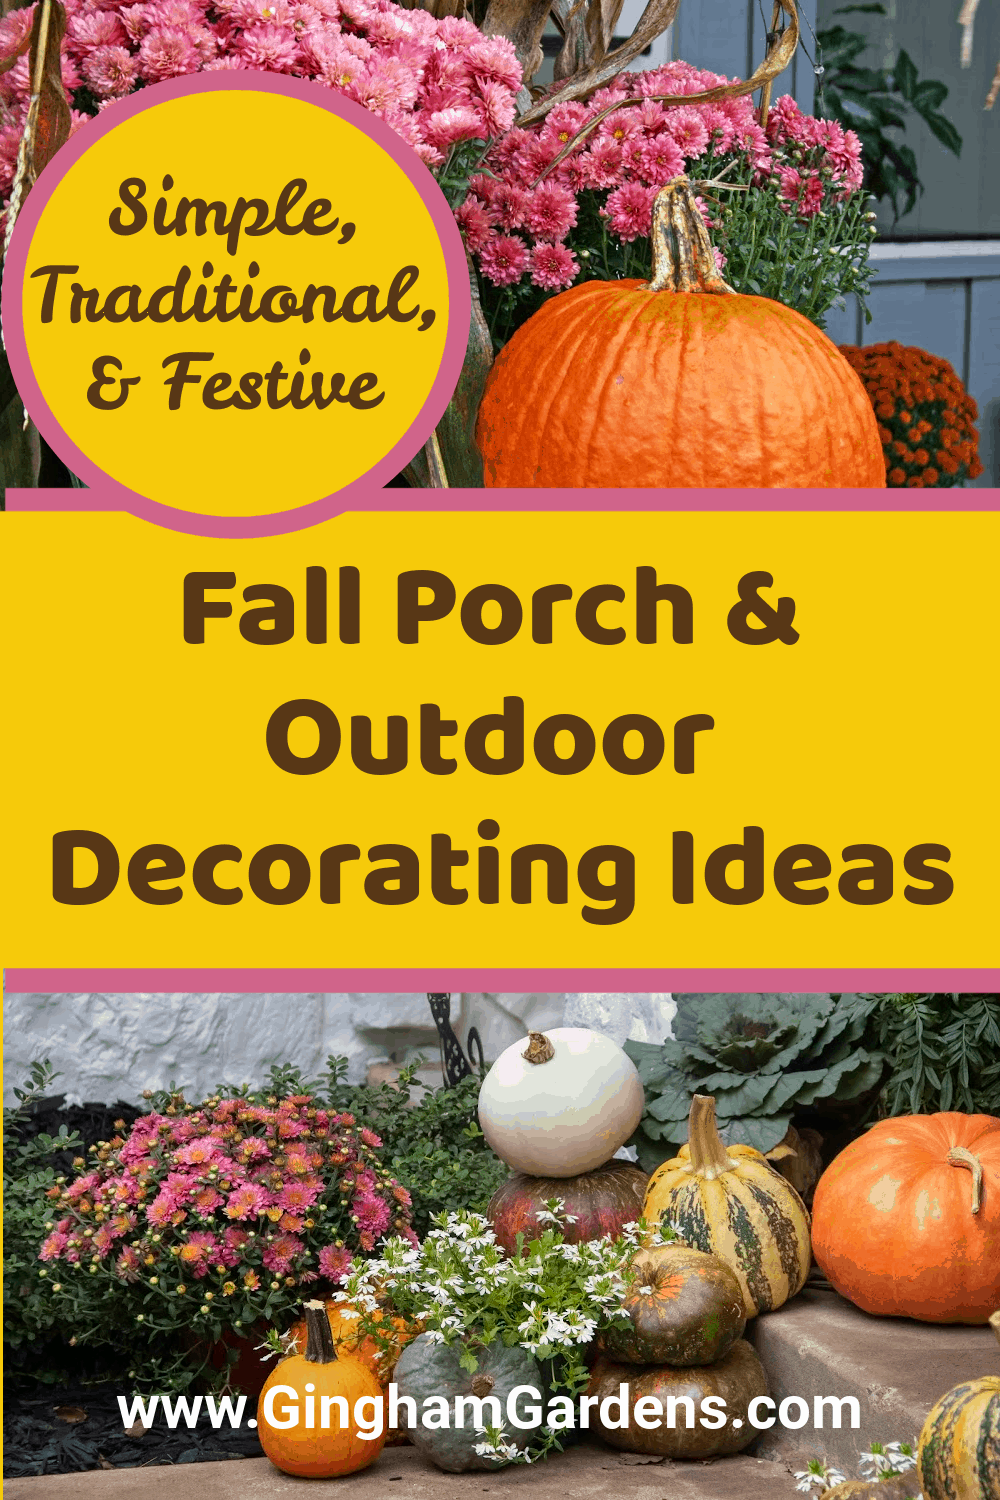 Images of outdoor fall displays with text overlay - Fall Porch & Outdoor Decorating Ideas